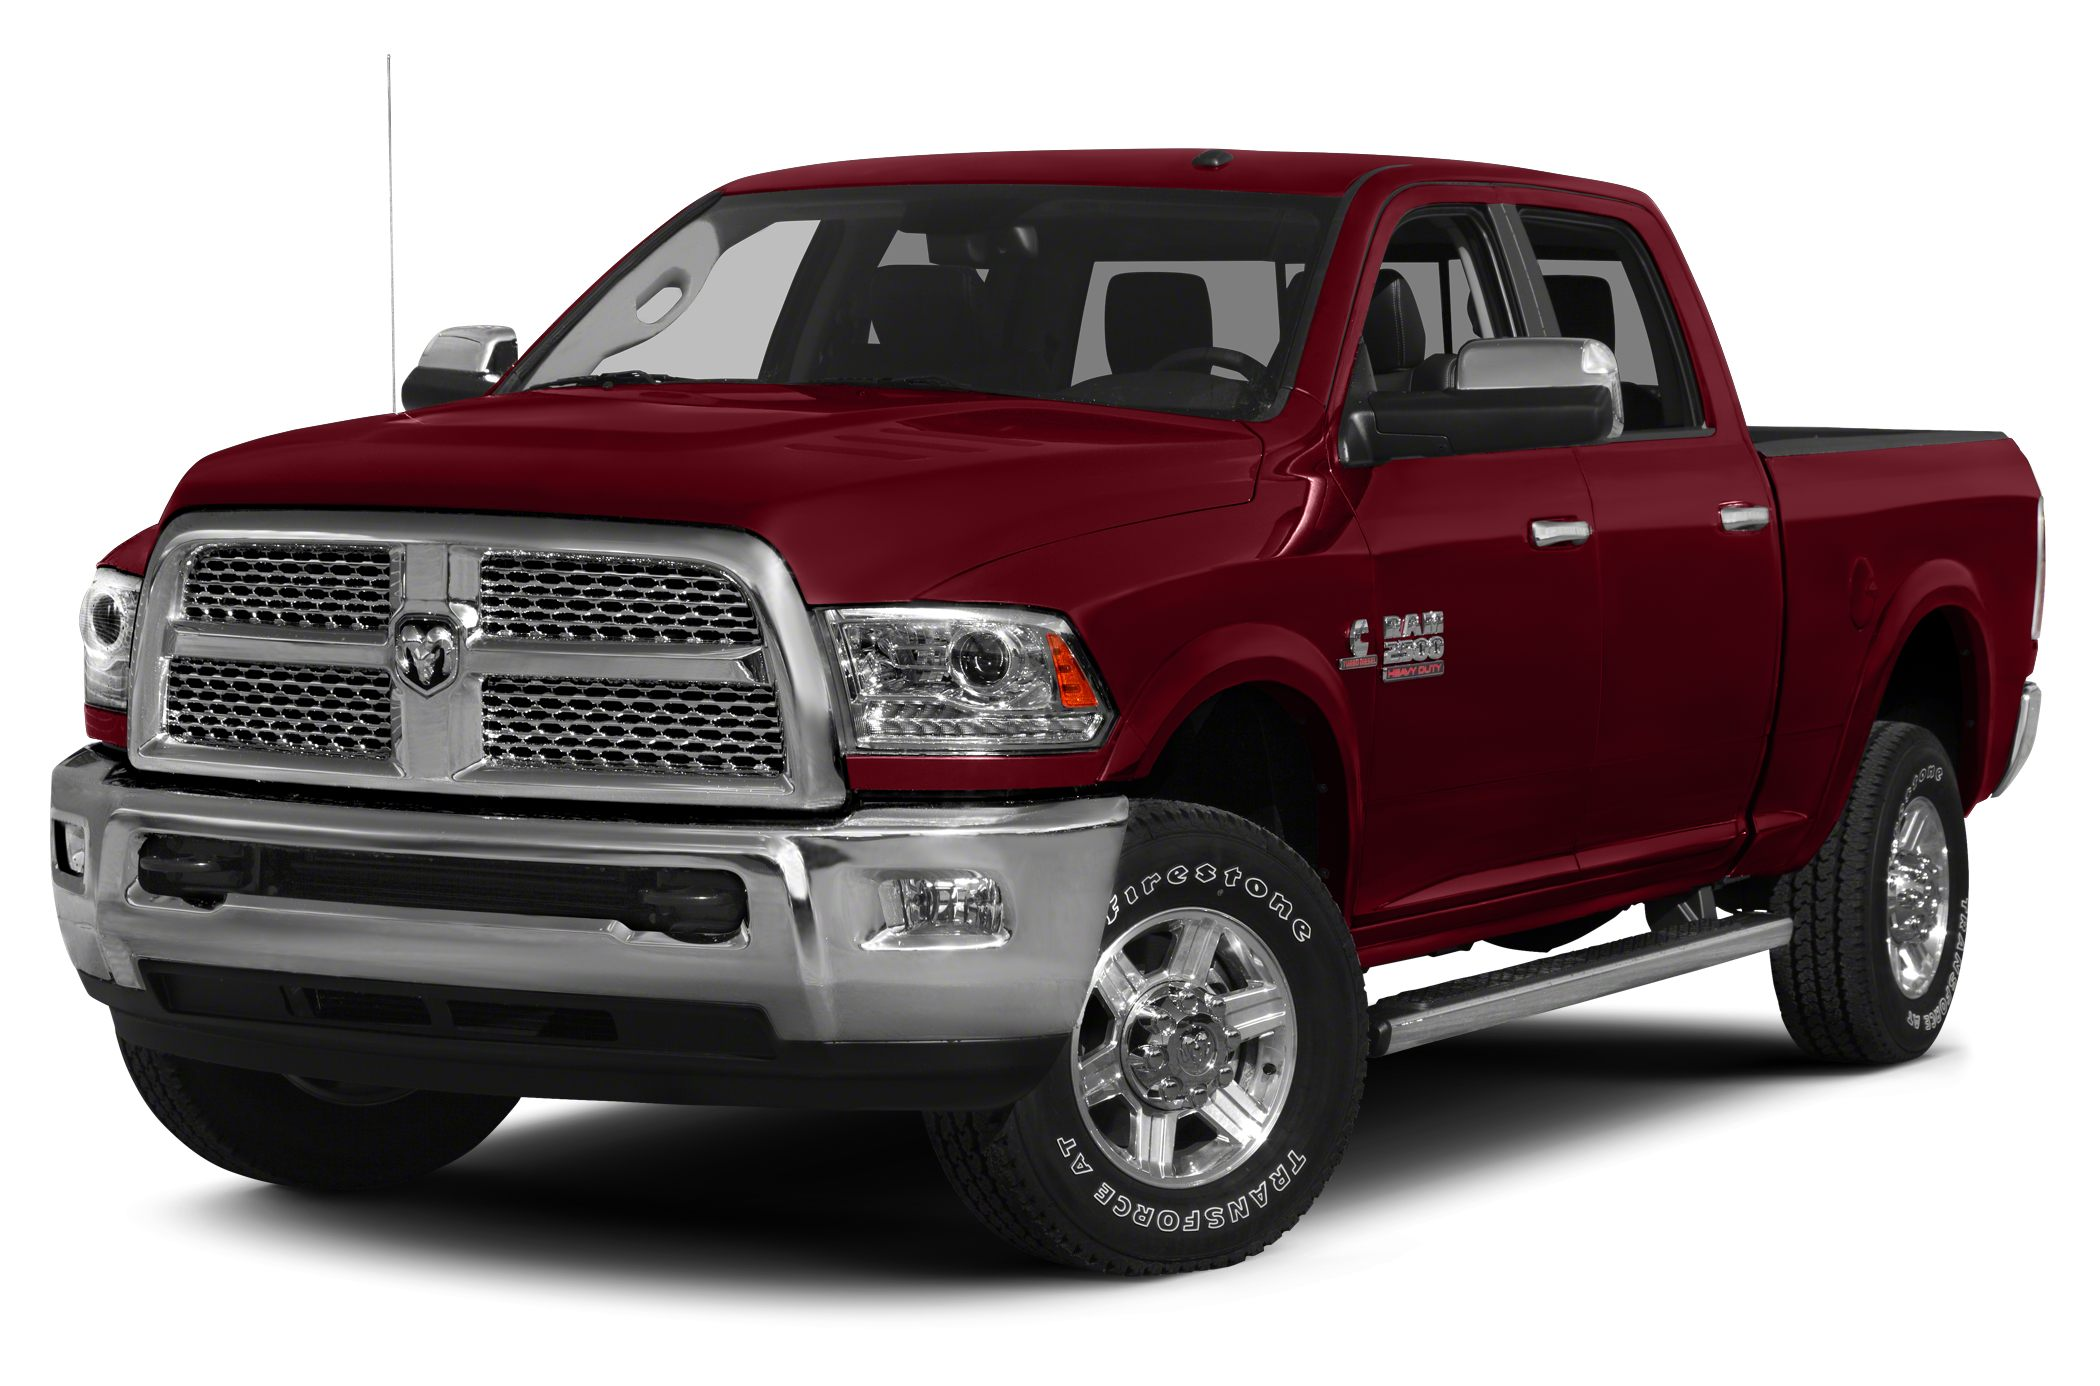 2015 RAM 2500 Longhorn Crew Cab Pickup for sale in Wilsonville for $69,900 with 0 miles.